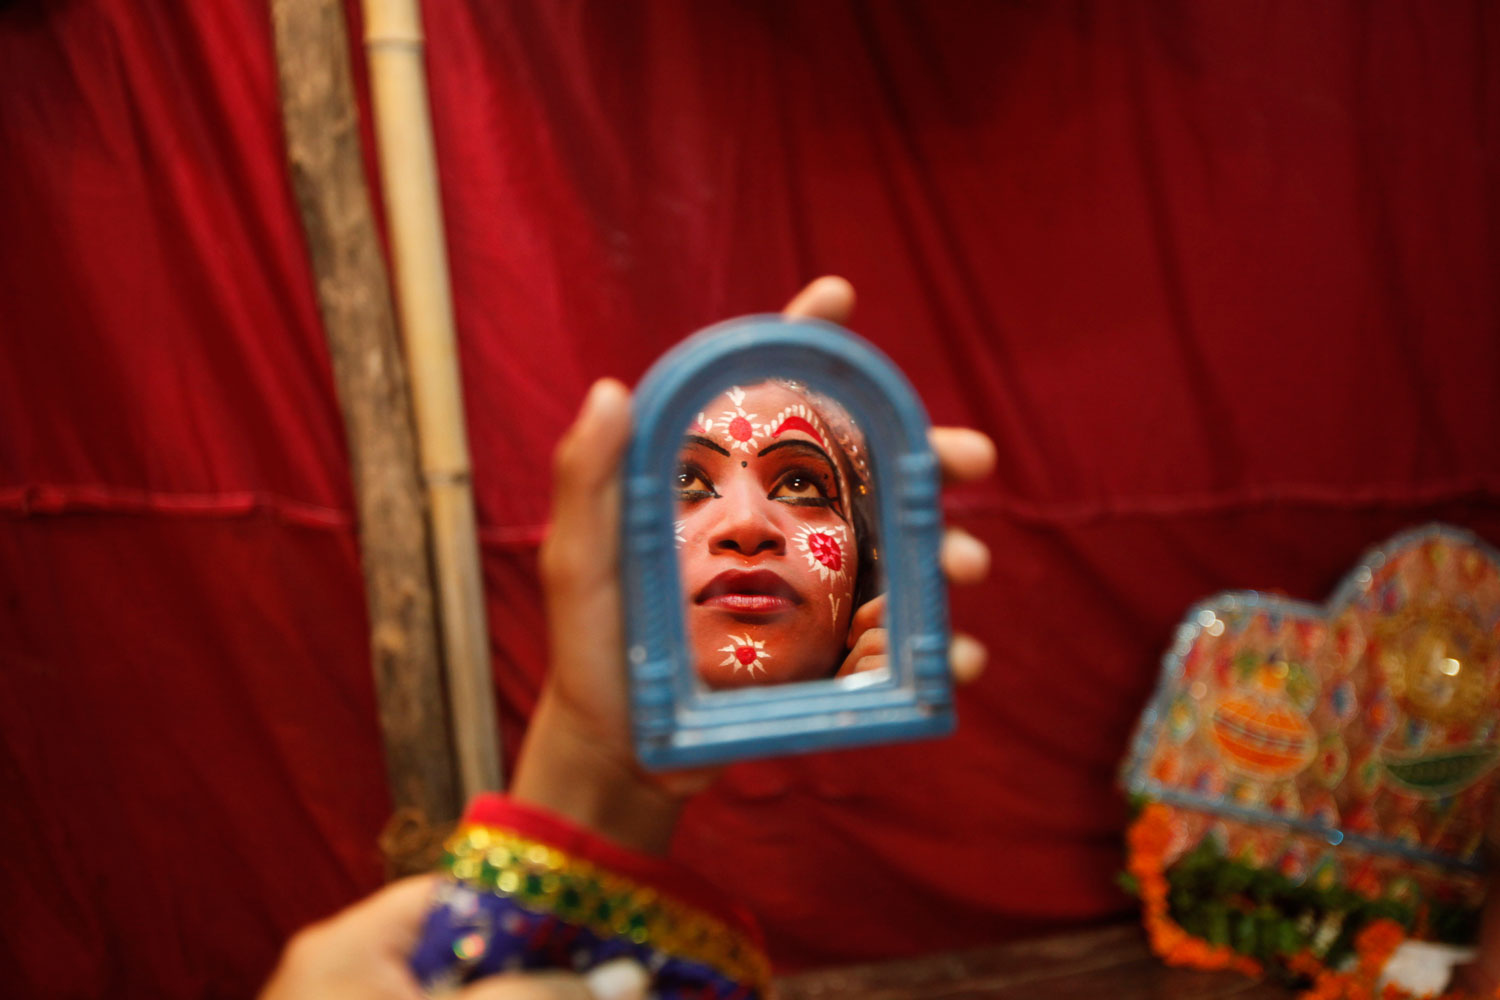 Aug. 10, 2012. A young Indian girl is reflected in a mirror as she gets ready to perform during Janmashtami festival celebrations in Mathura, India. Janmashtami is the festival that marks the birth of Hindu God Krishna.